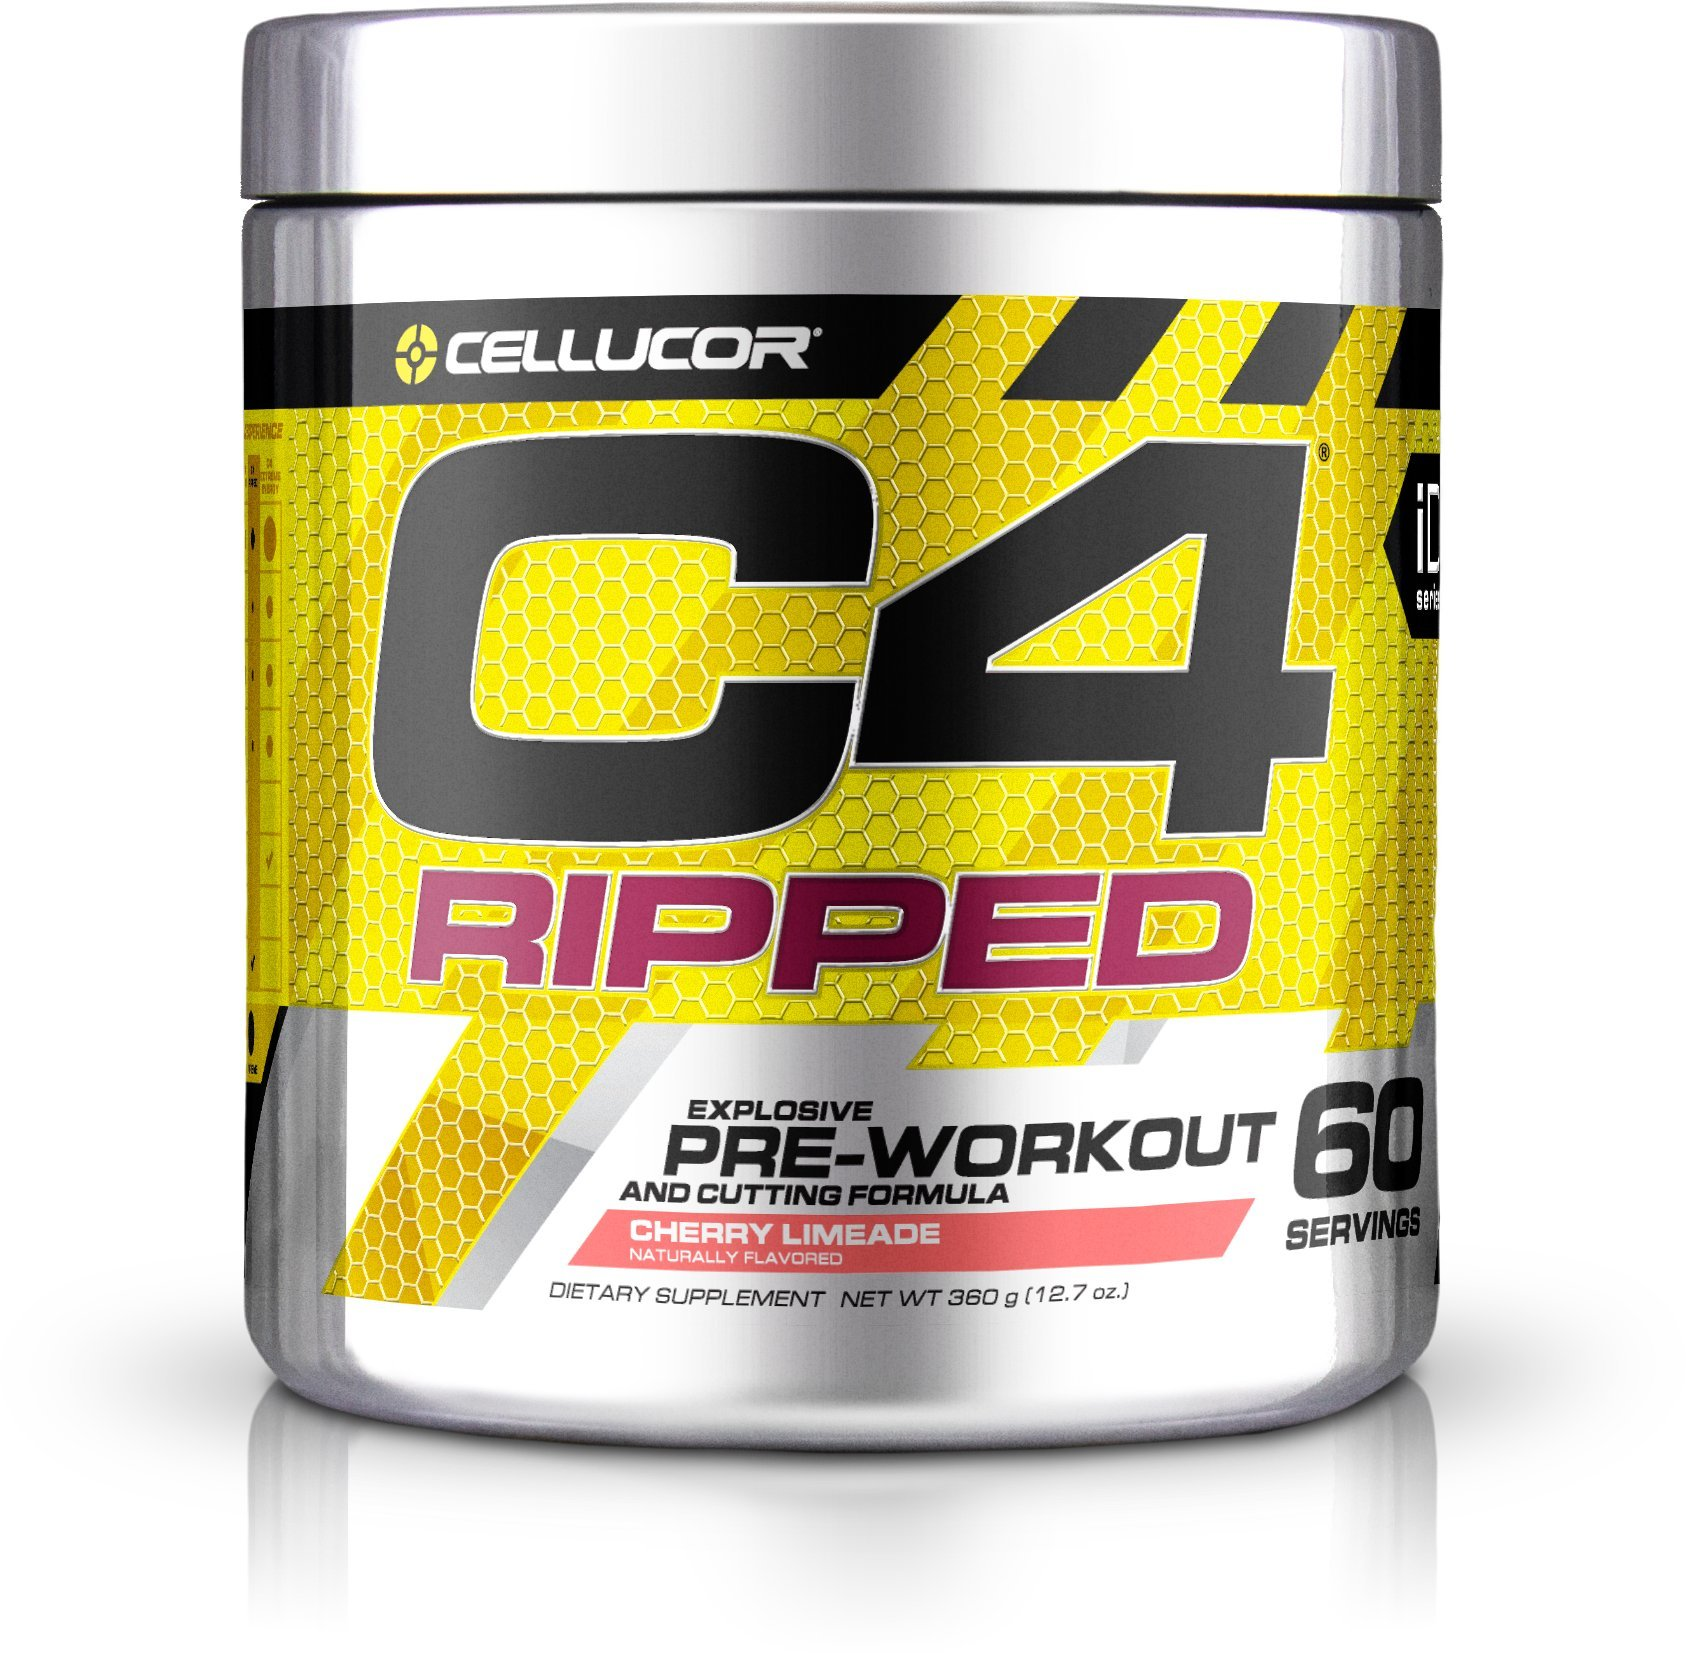 Cellucor C4 Ripped Pre Workout Powder Energy Drink + Fat Burner, Fat Burners for Men & Women, Weight Loss, Cherry Limeade, 60 Servings